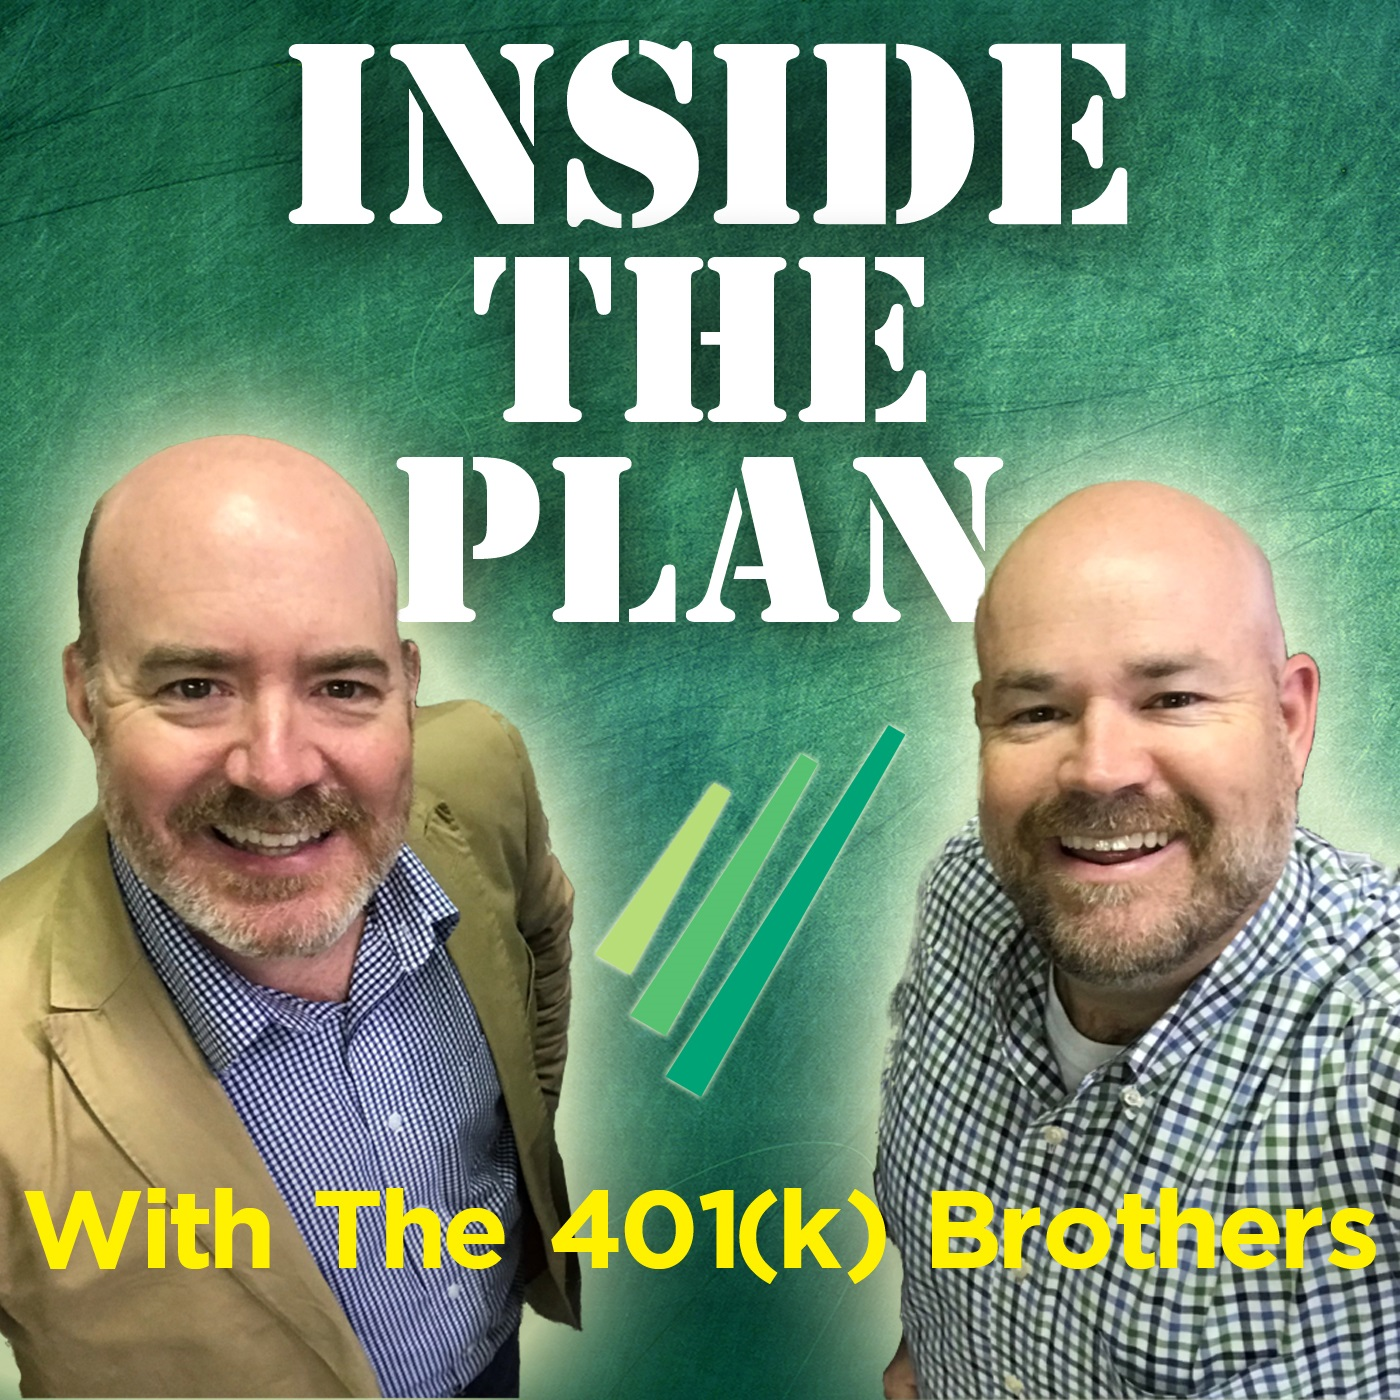 Inside The Plan With The 401(k) Brothers show art